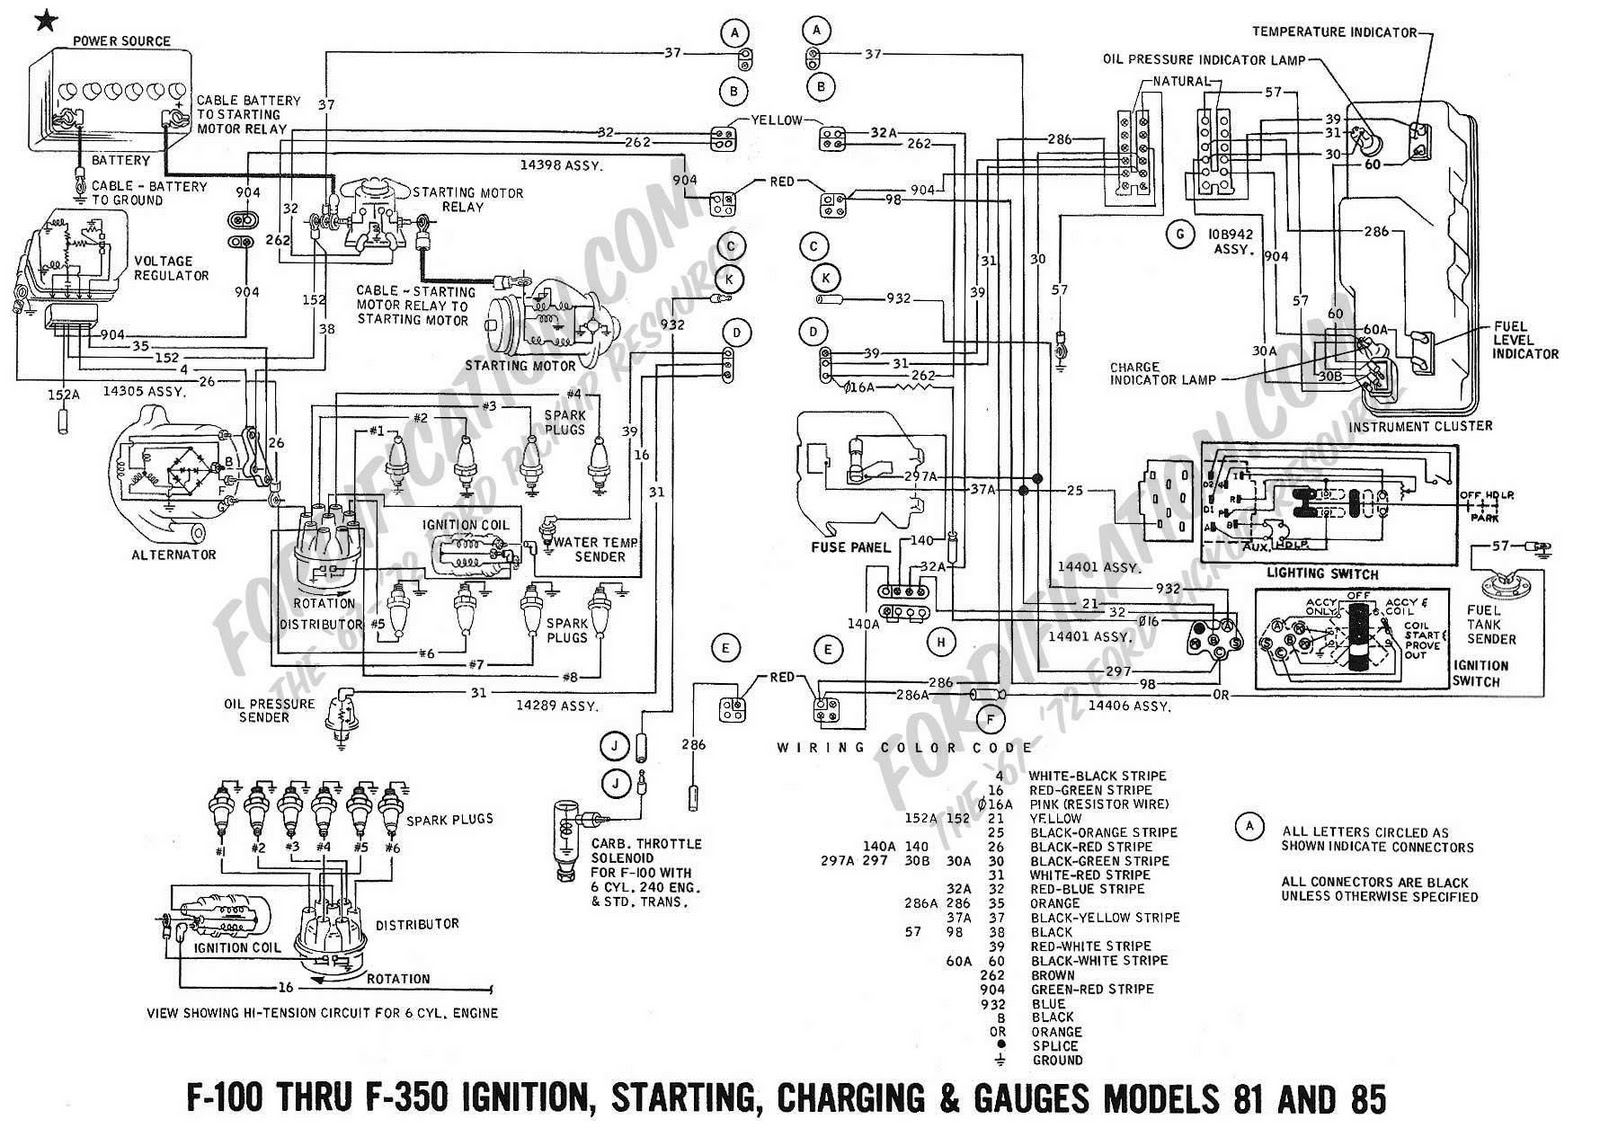 1968 Camaro Gas Tank Wiring Diagram Will Be A Thing Radio 1969 Ford F100 F350 Ignition Starting Charging And Dash